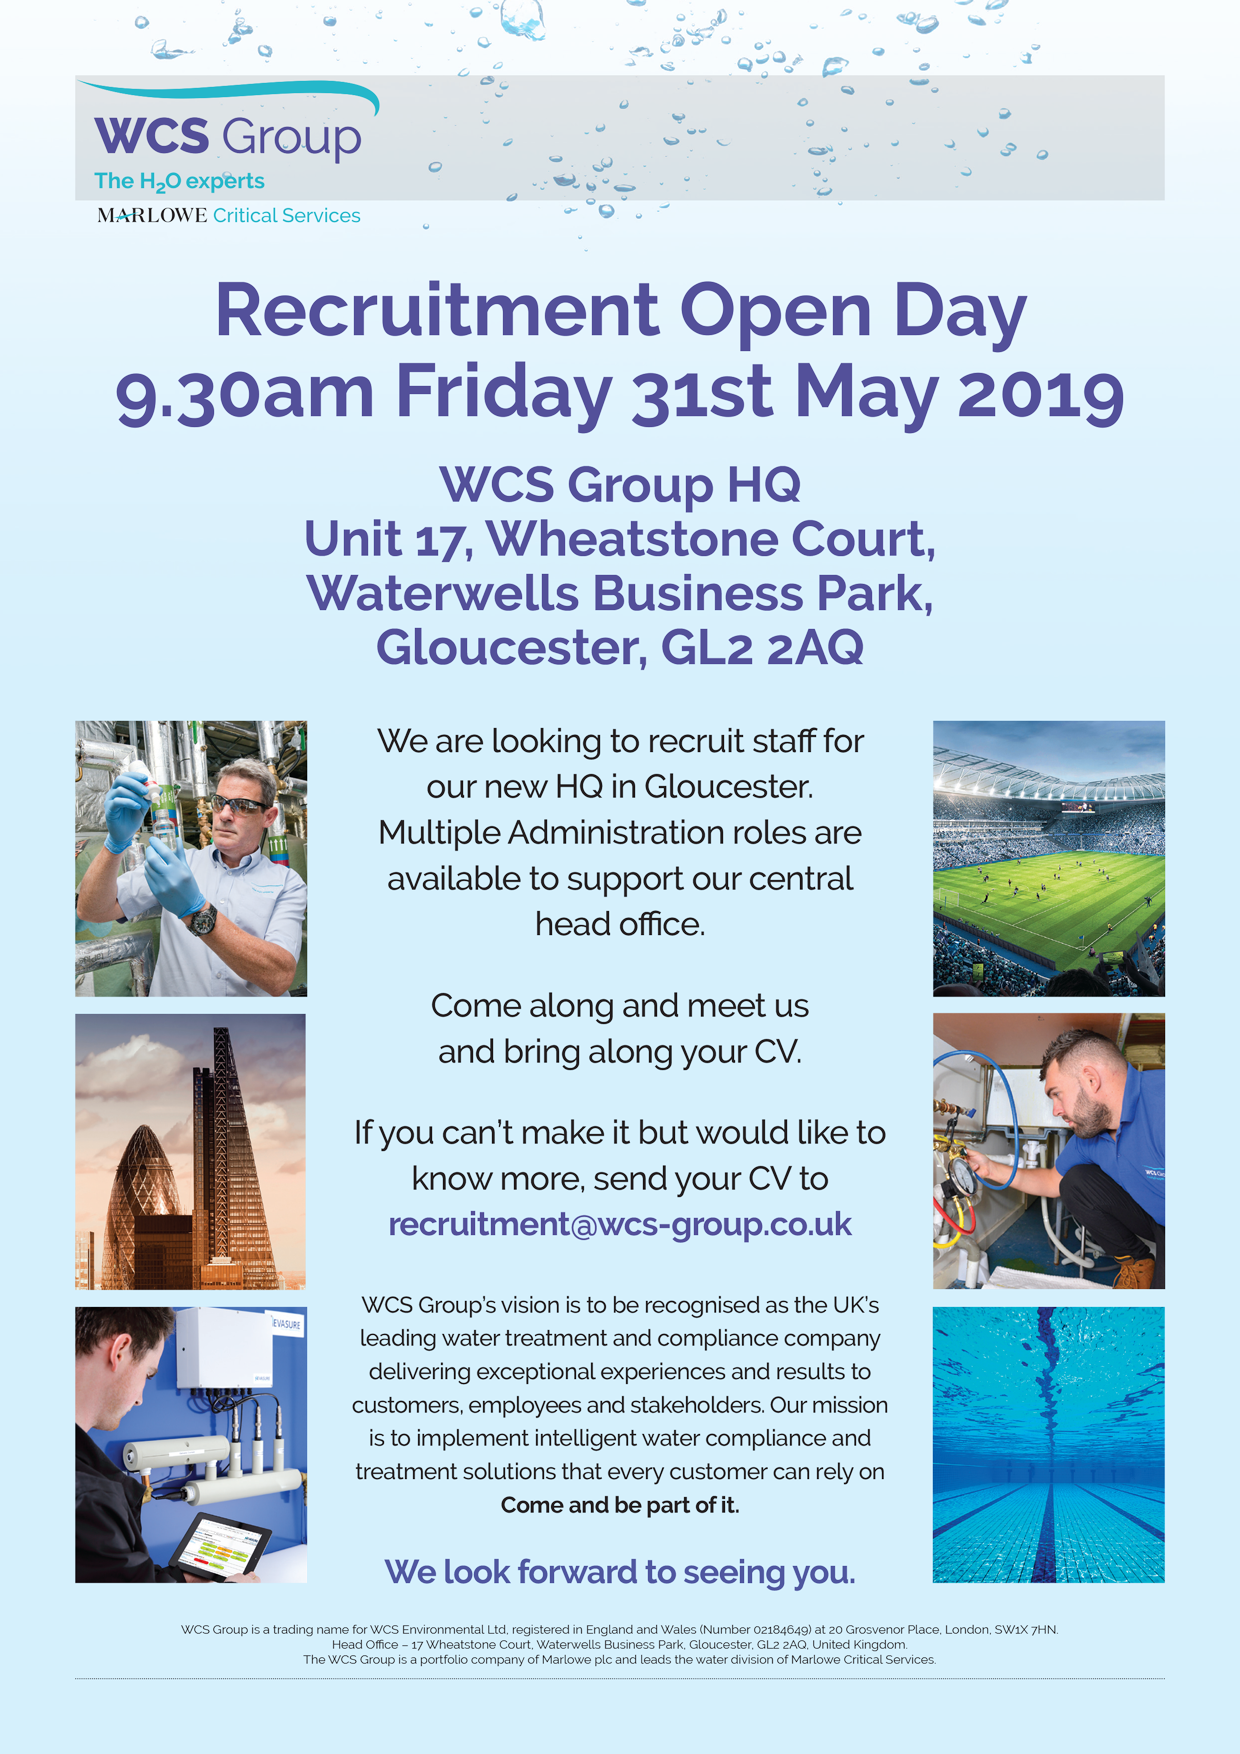 Recruitment Open Day - 9.30am Friday 31st May 2019